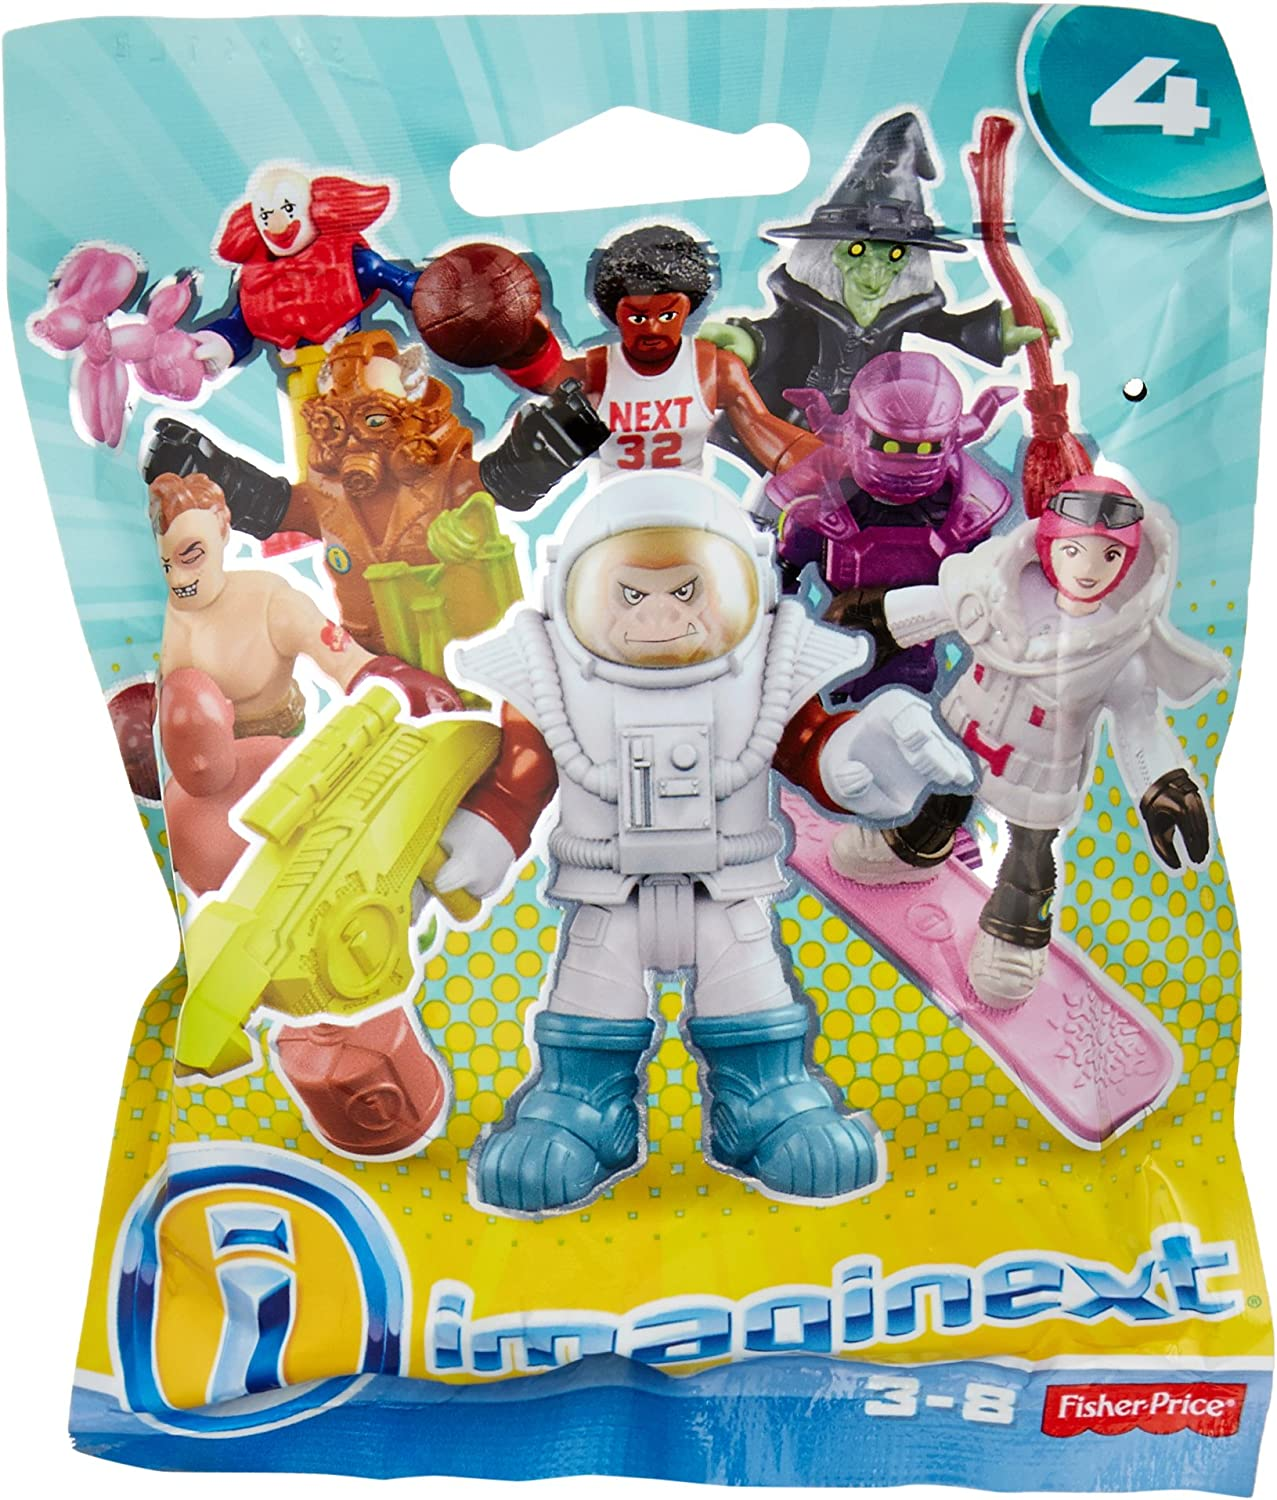 36288b49ceaf Fisher Price Imaginext Series Series Series 4 Collectible Figures ...